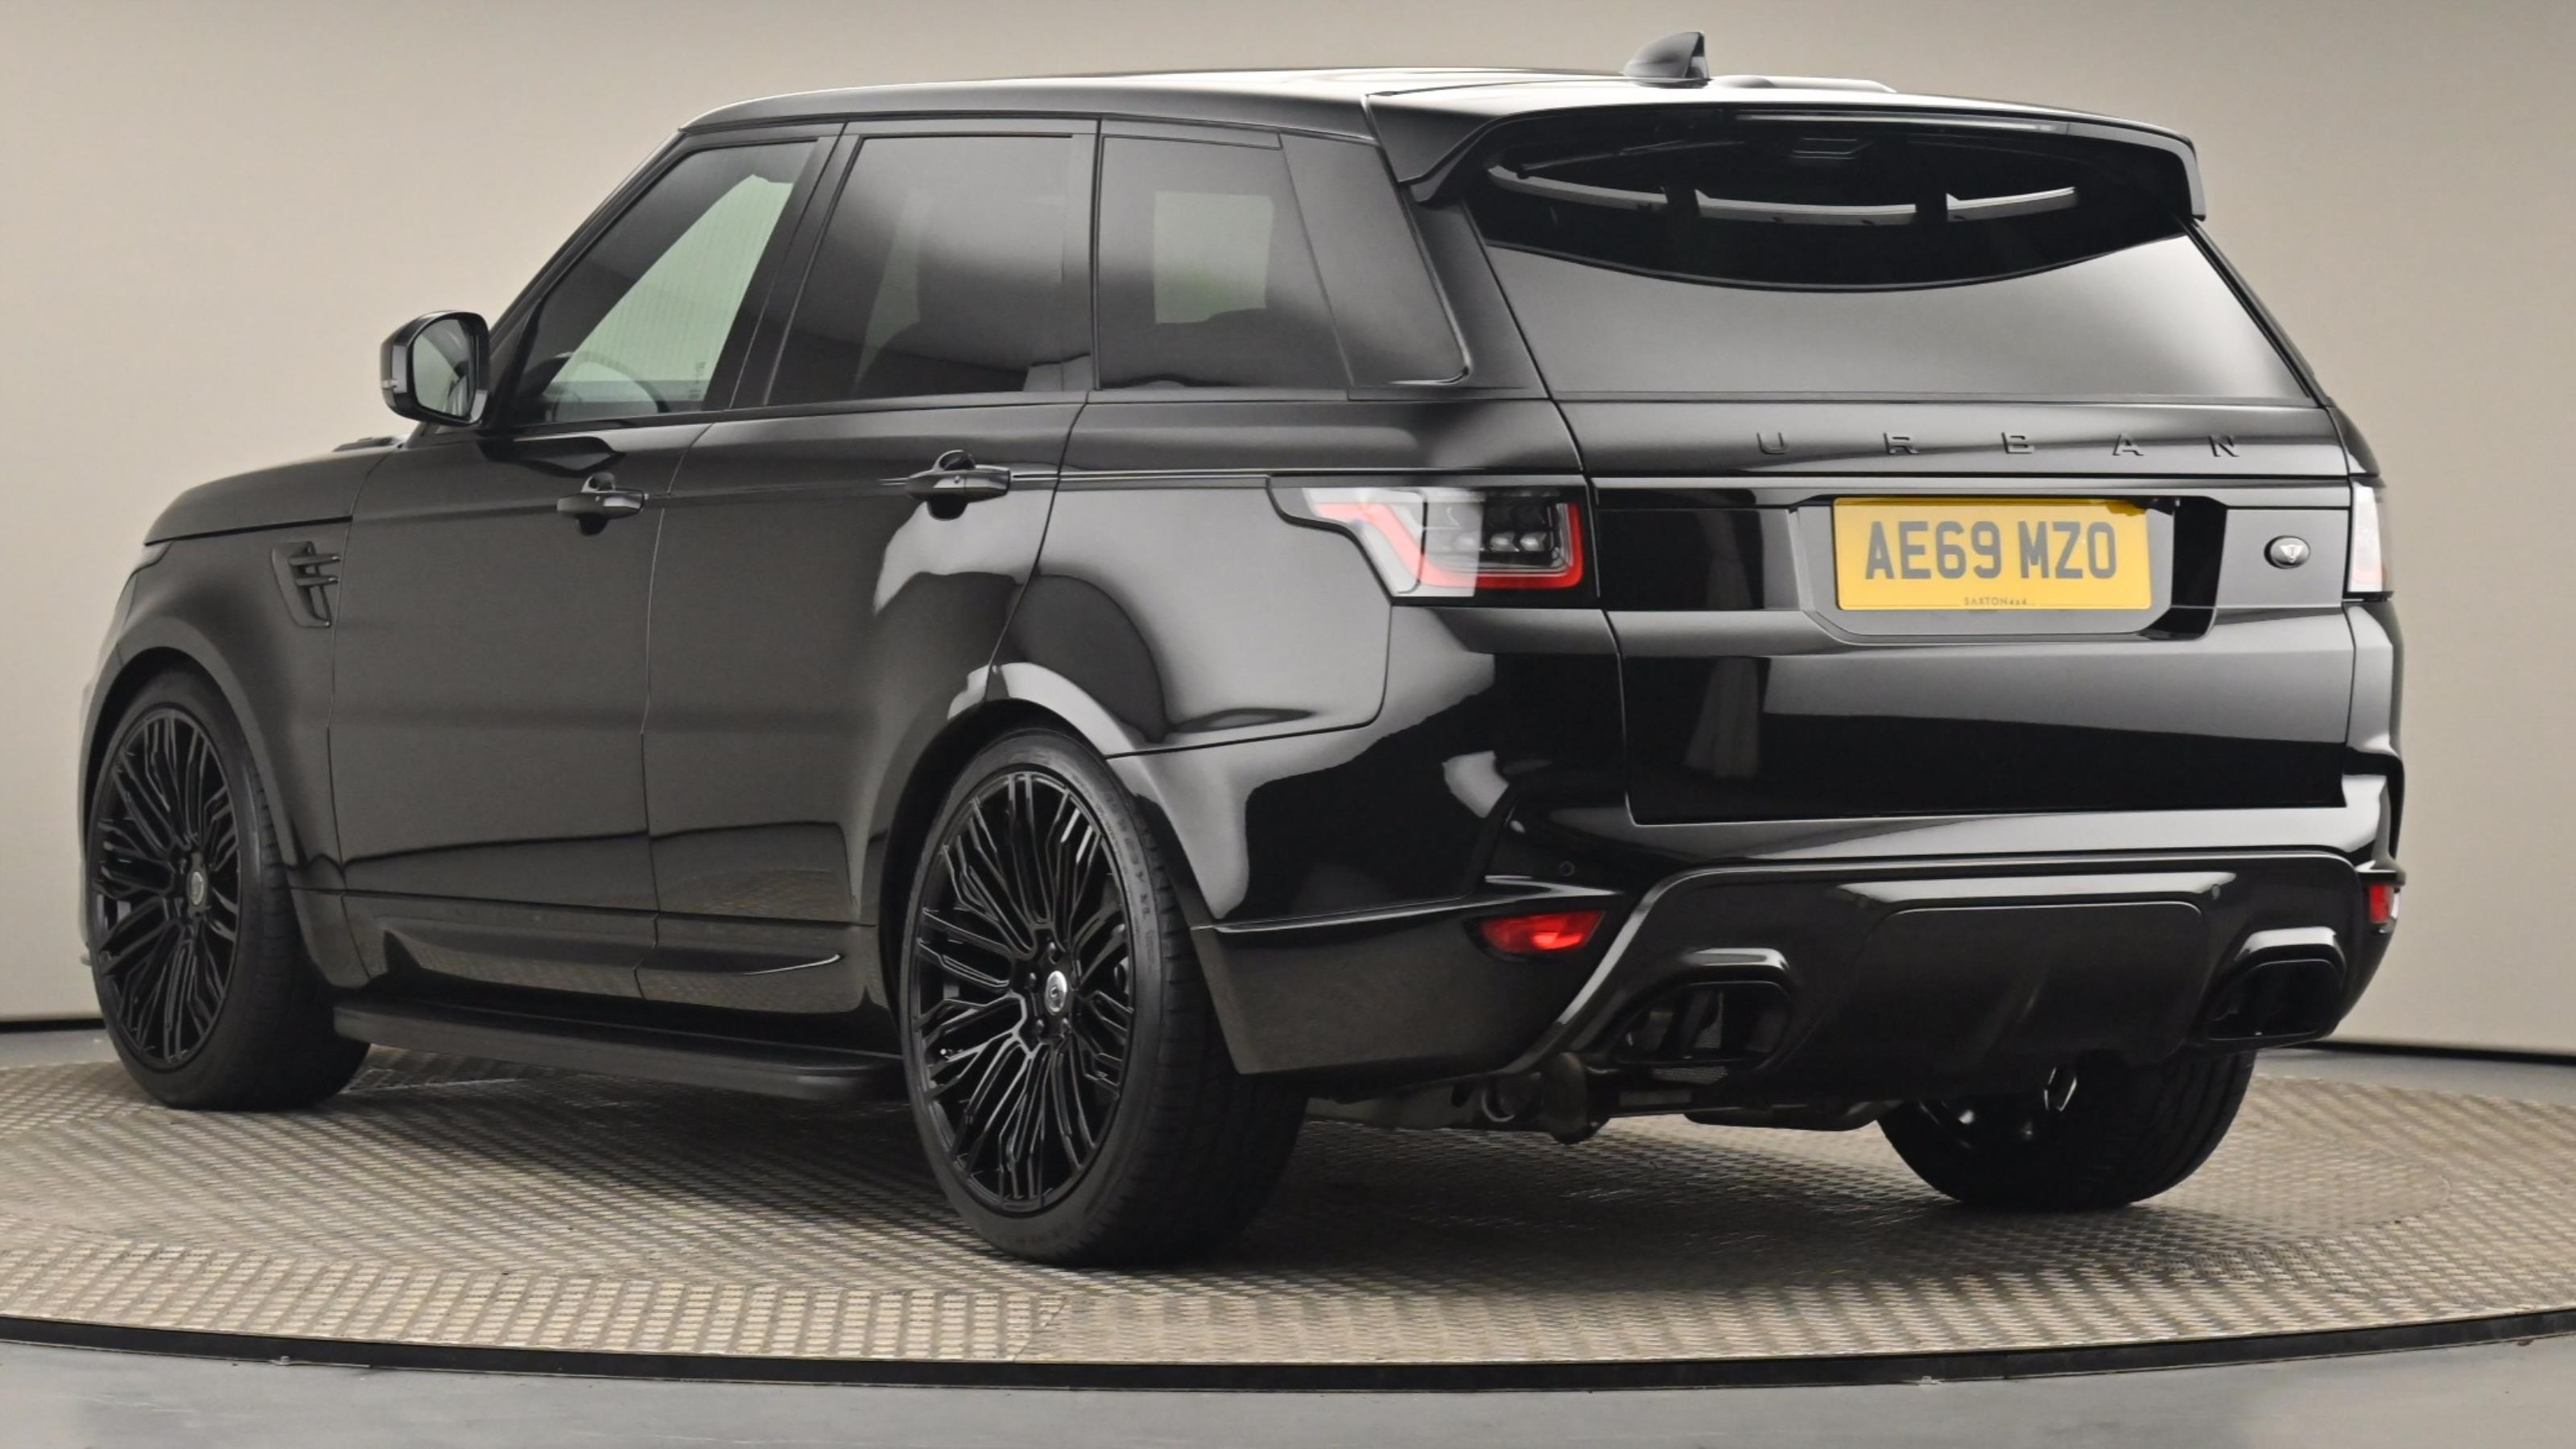 Used 2019 Land Rover RANGE ROVER SPORT 3.0 SDV6 HSE 5dr Auto BLACK at Saxton4x4